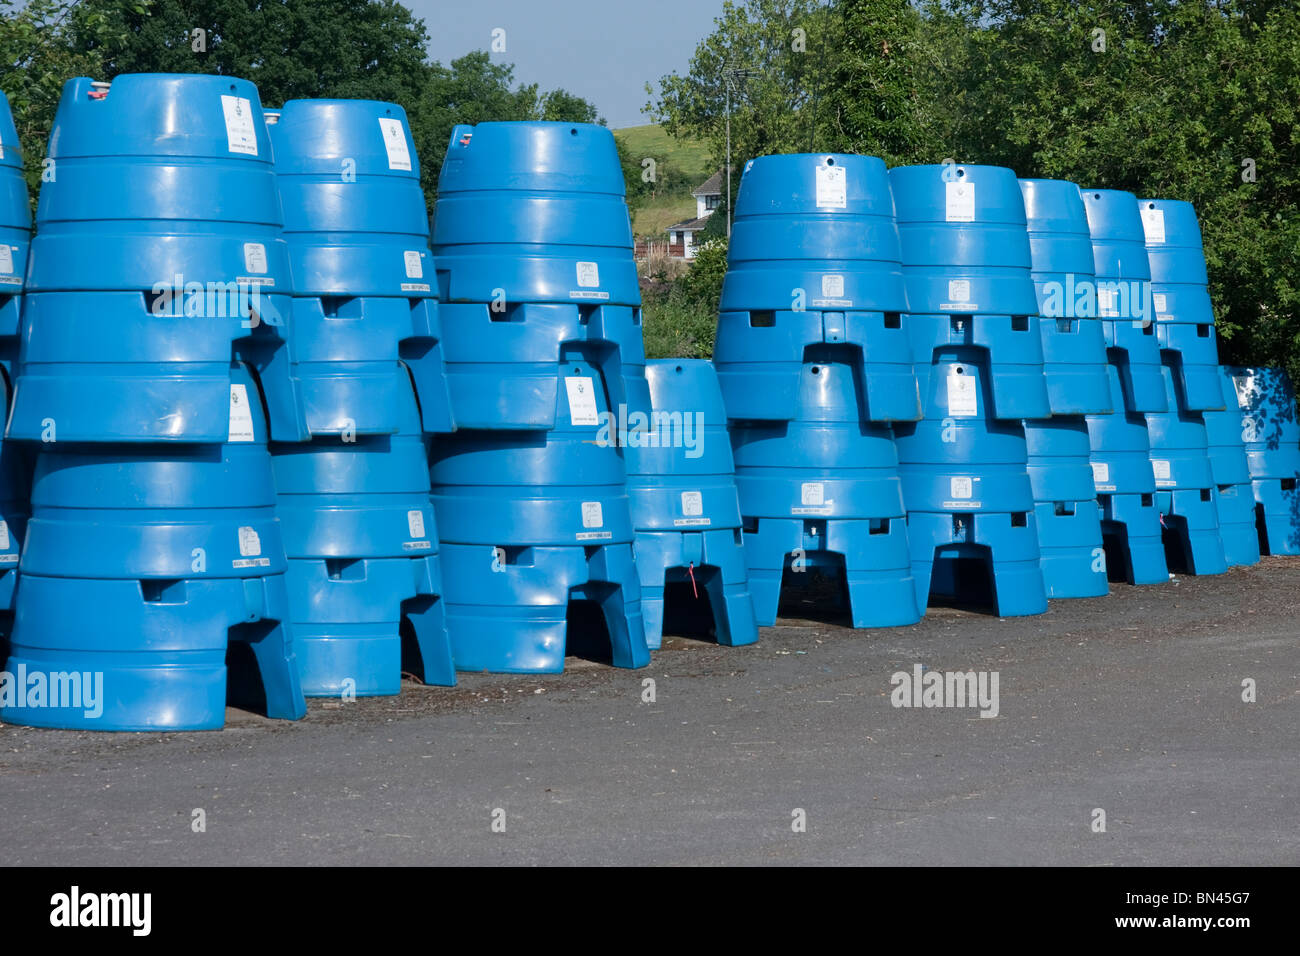 Drinking water storage containers stacked ready for use in case of a